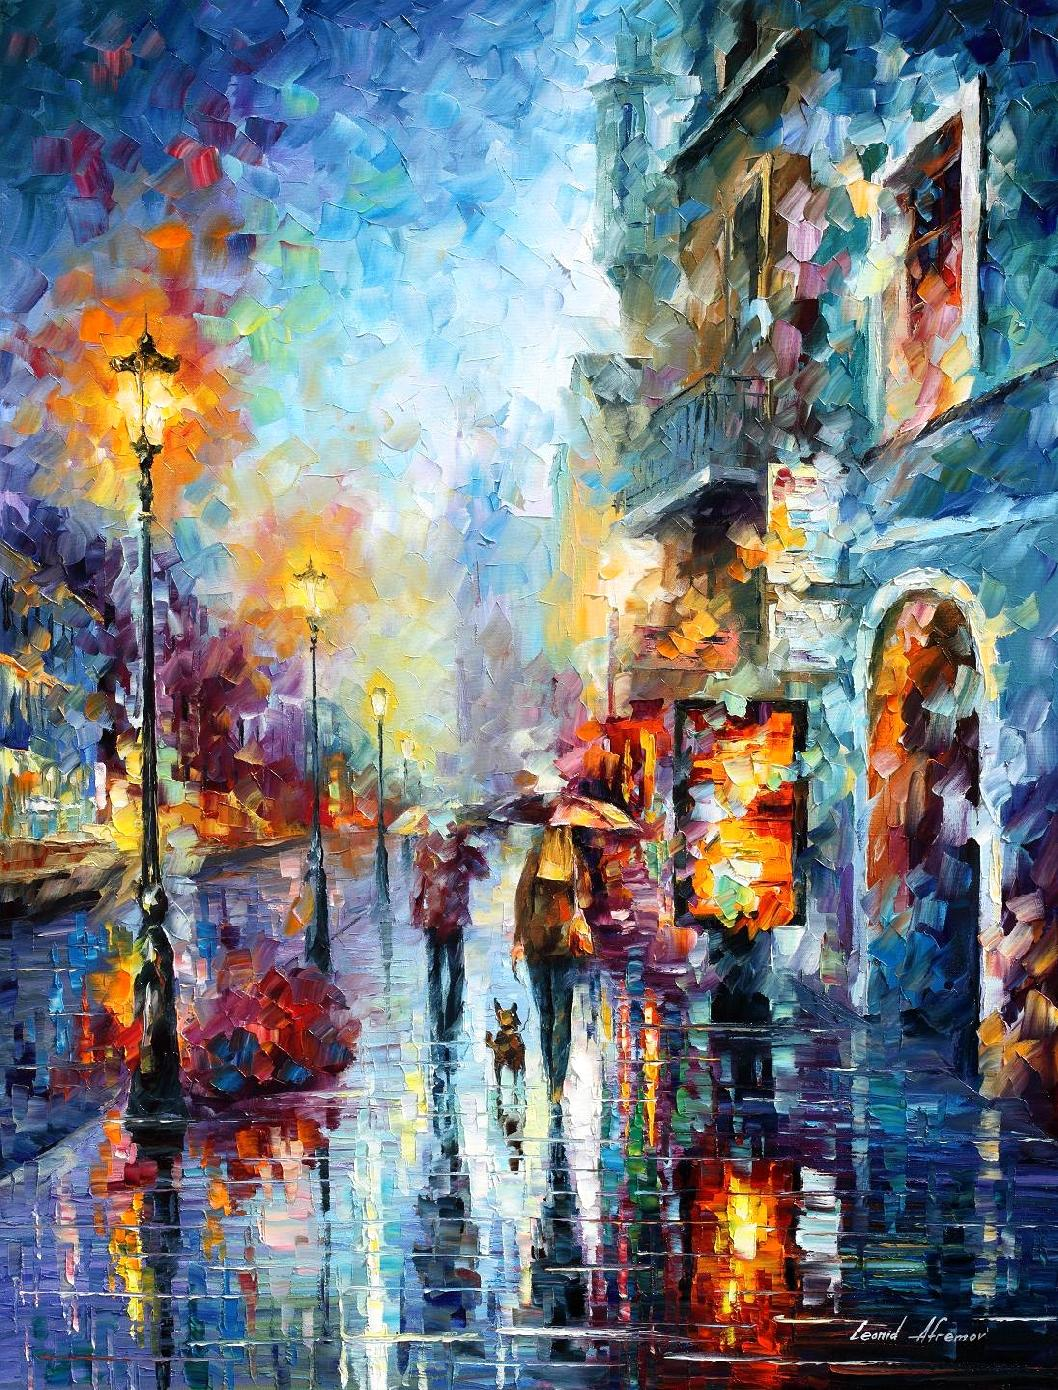 Pinterest Pinturas Abstract Wall Art By Famous Painter Leonid Afremov For